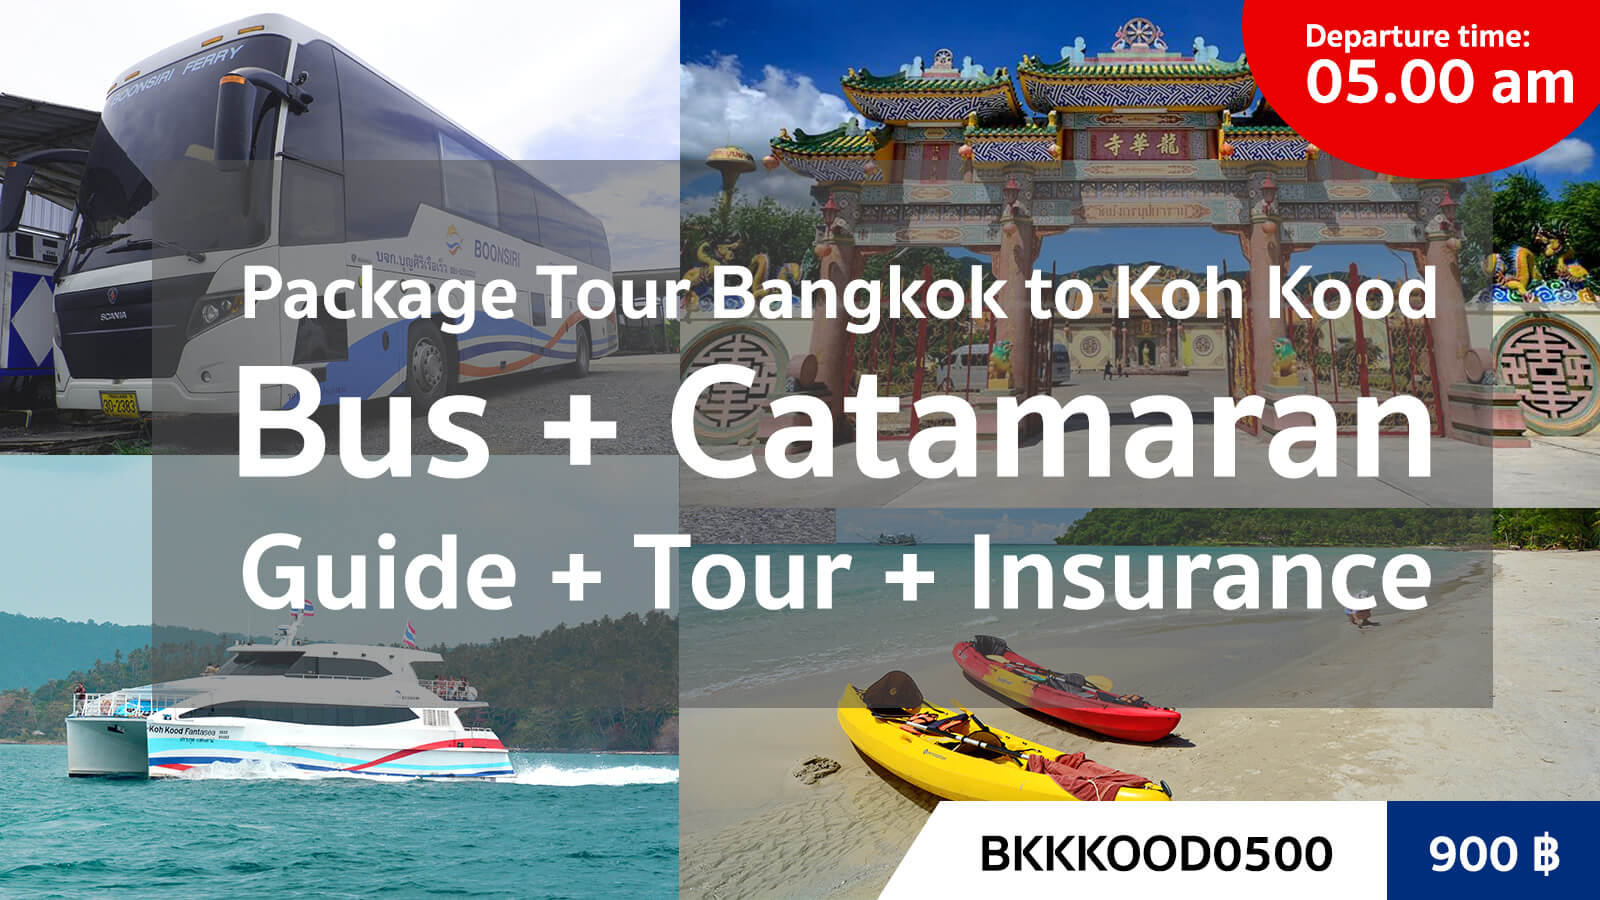 Package Tour Bagkok - Koh Kood 05.00